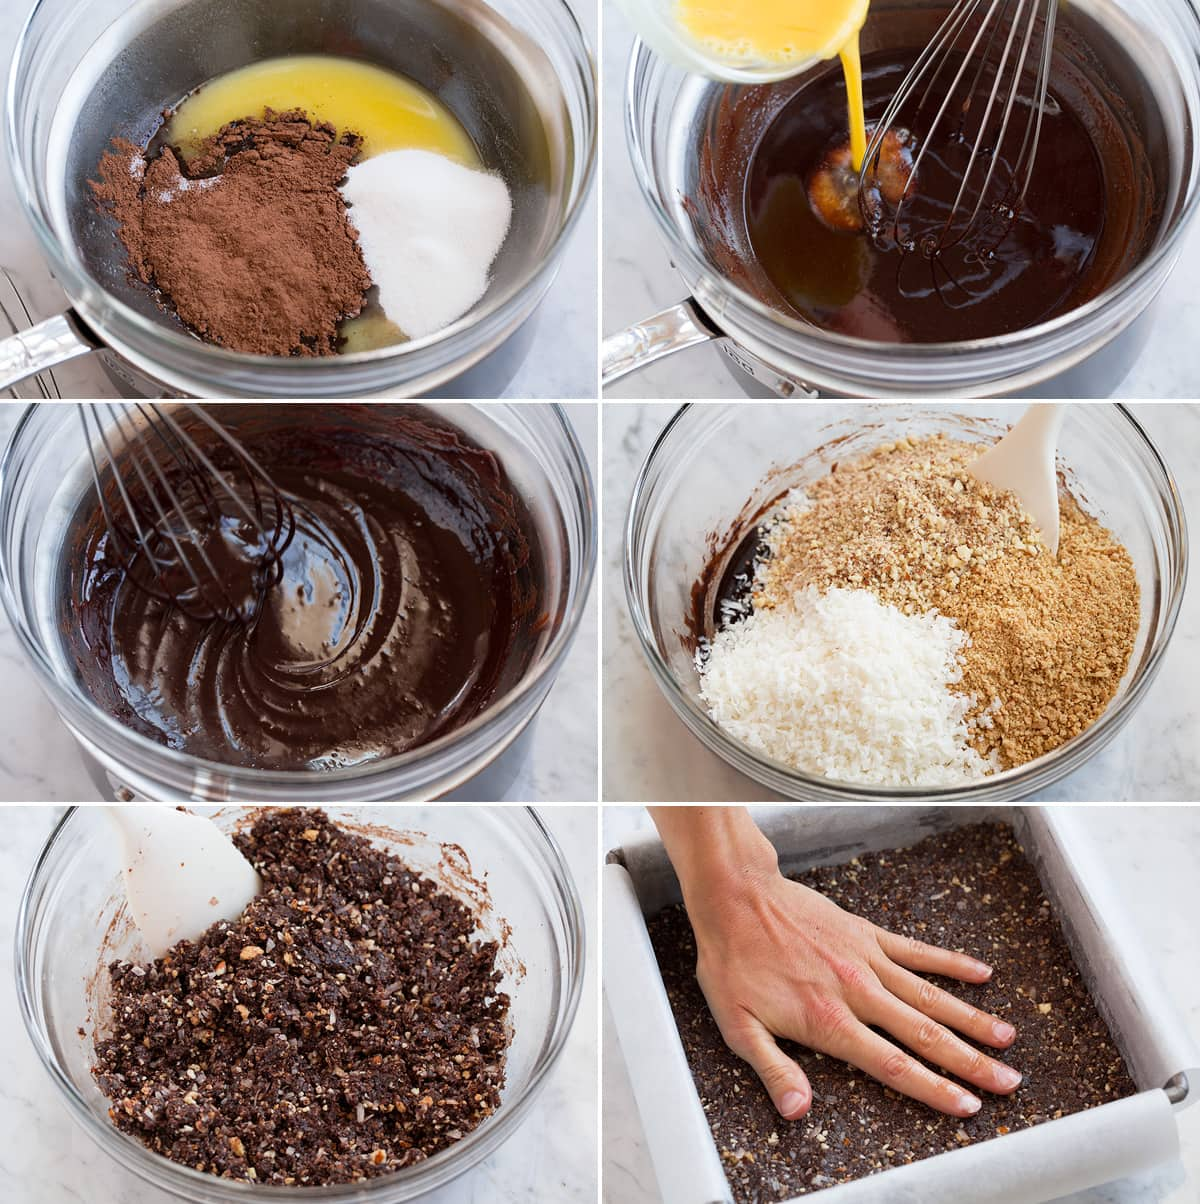 Collage of 6 images showing steps of preparing first layer of nanaimo bars. Made with cocoa, sugar, graham crackers, coconut and nuts.